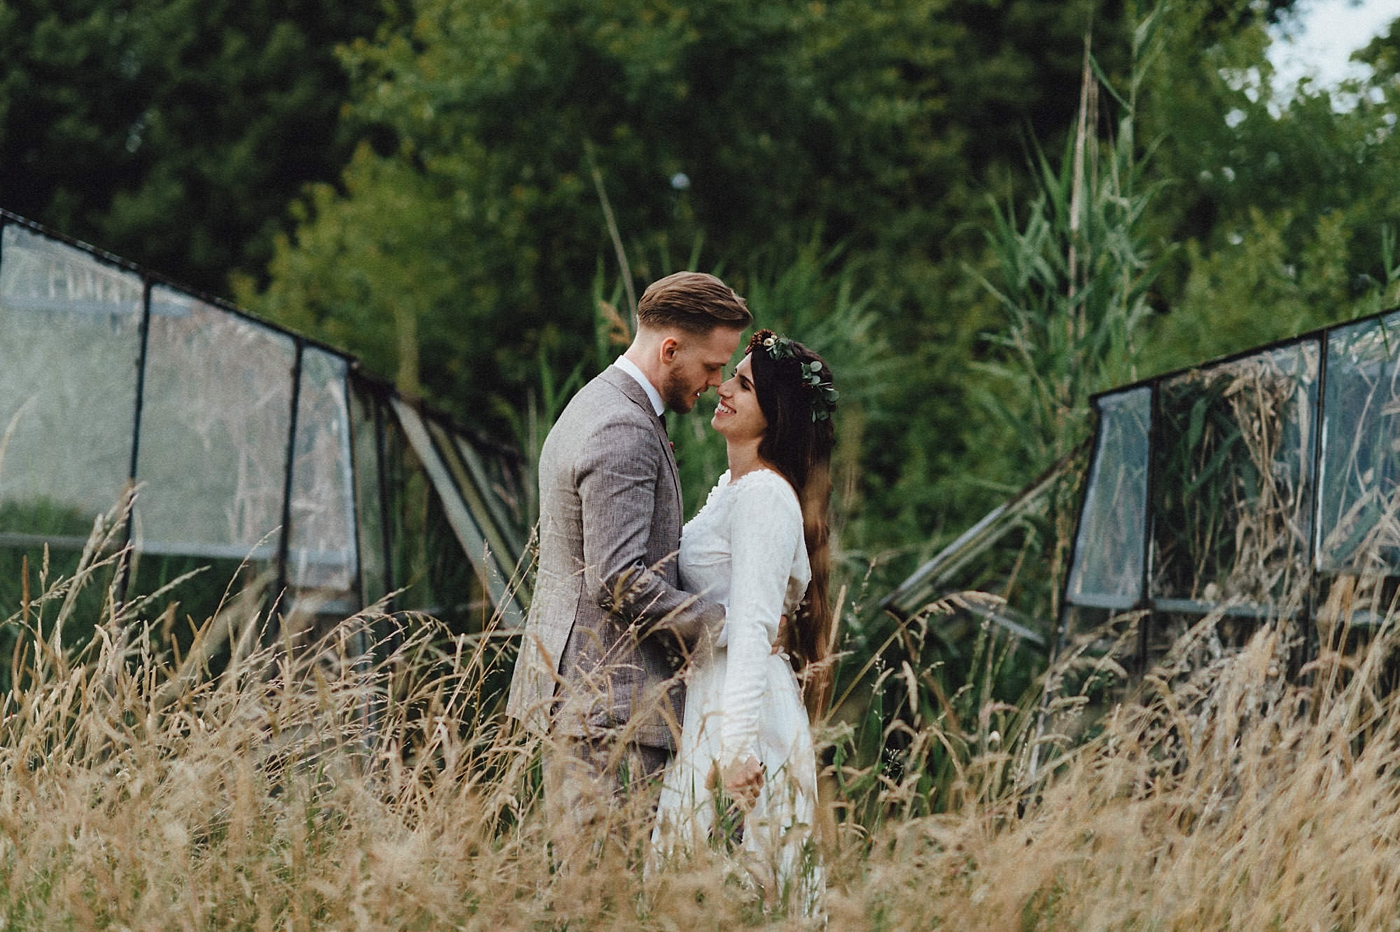 urban-elopement-wedding-251 Merve & Nils emotionales Elopement - Wedding Wesel & Schottlandurban elopement wedding 251 1